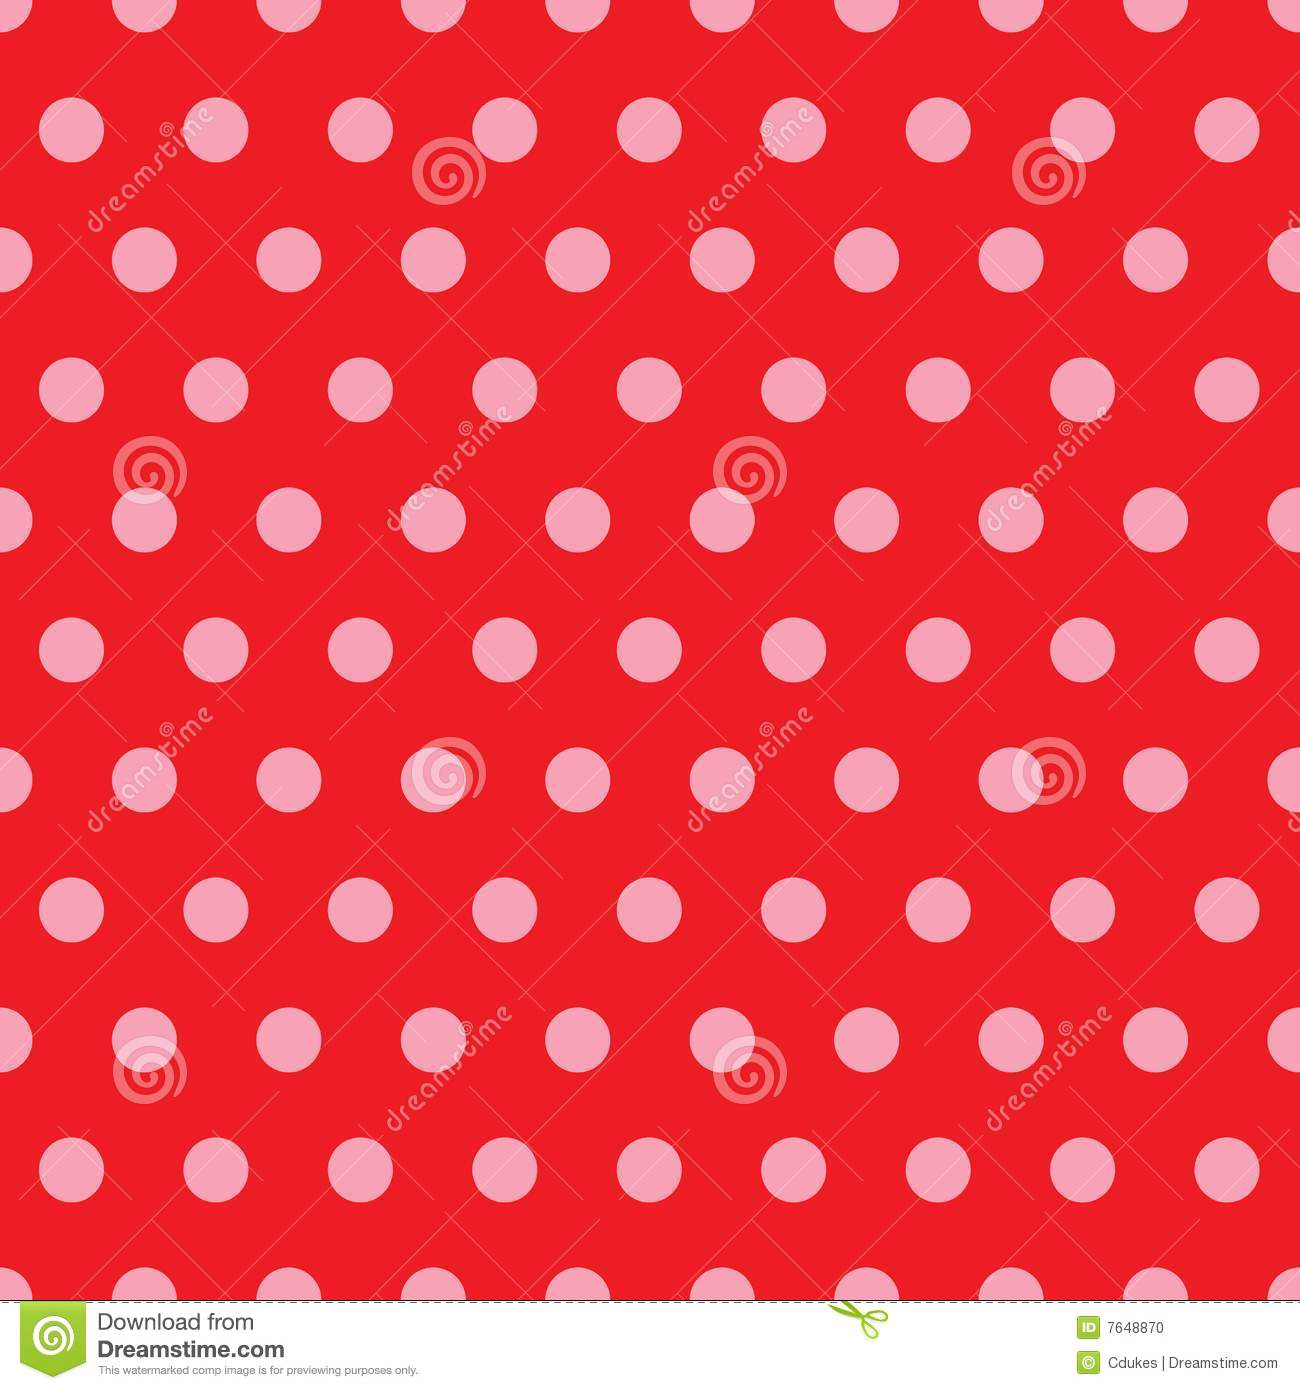 Red pink polka dot pattern stock photo image 7648870 for Red and white polka dot pattern